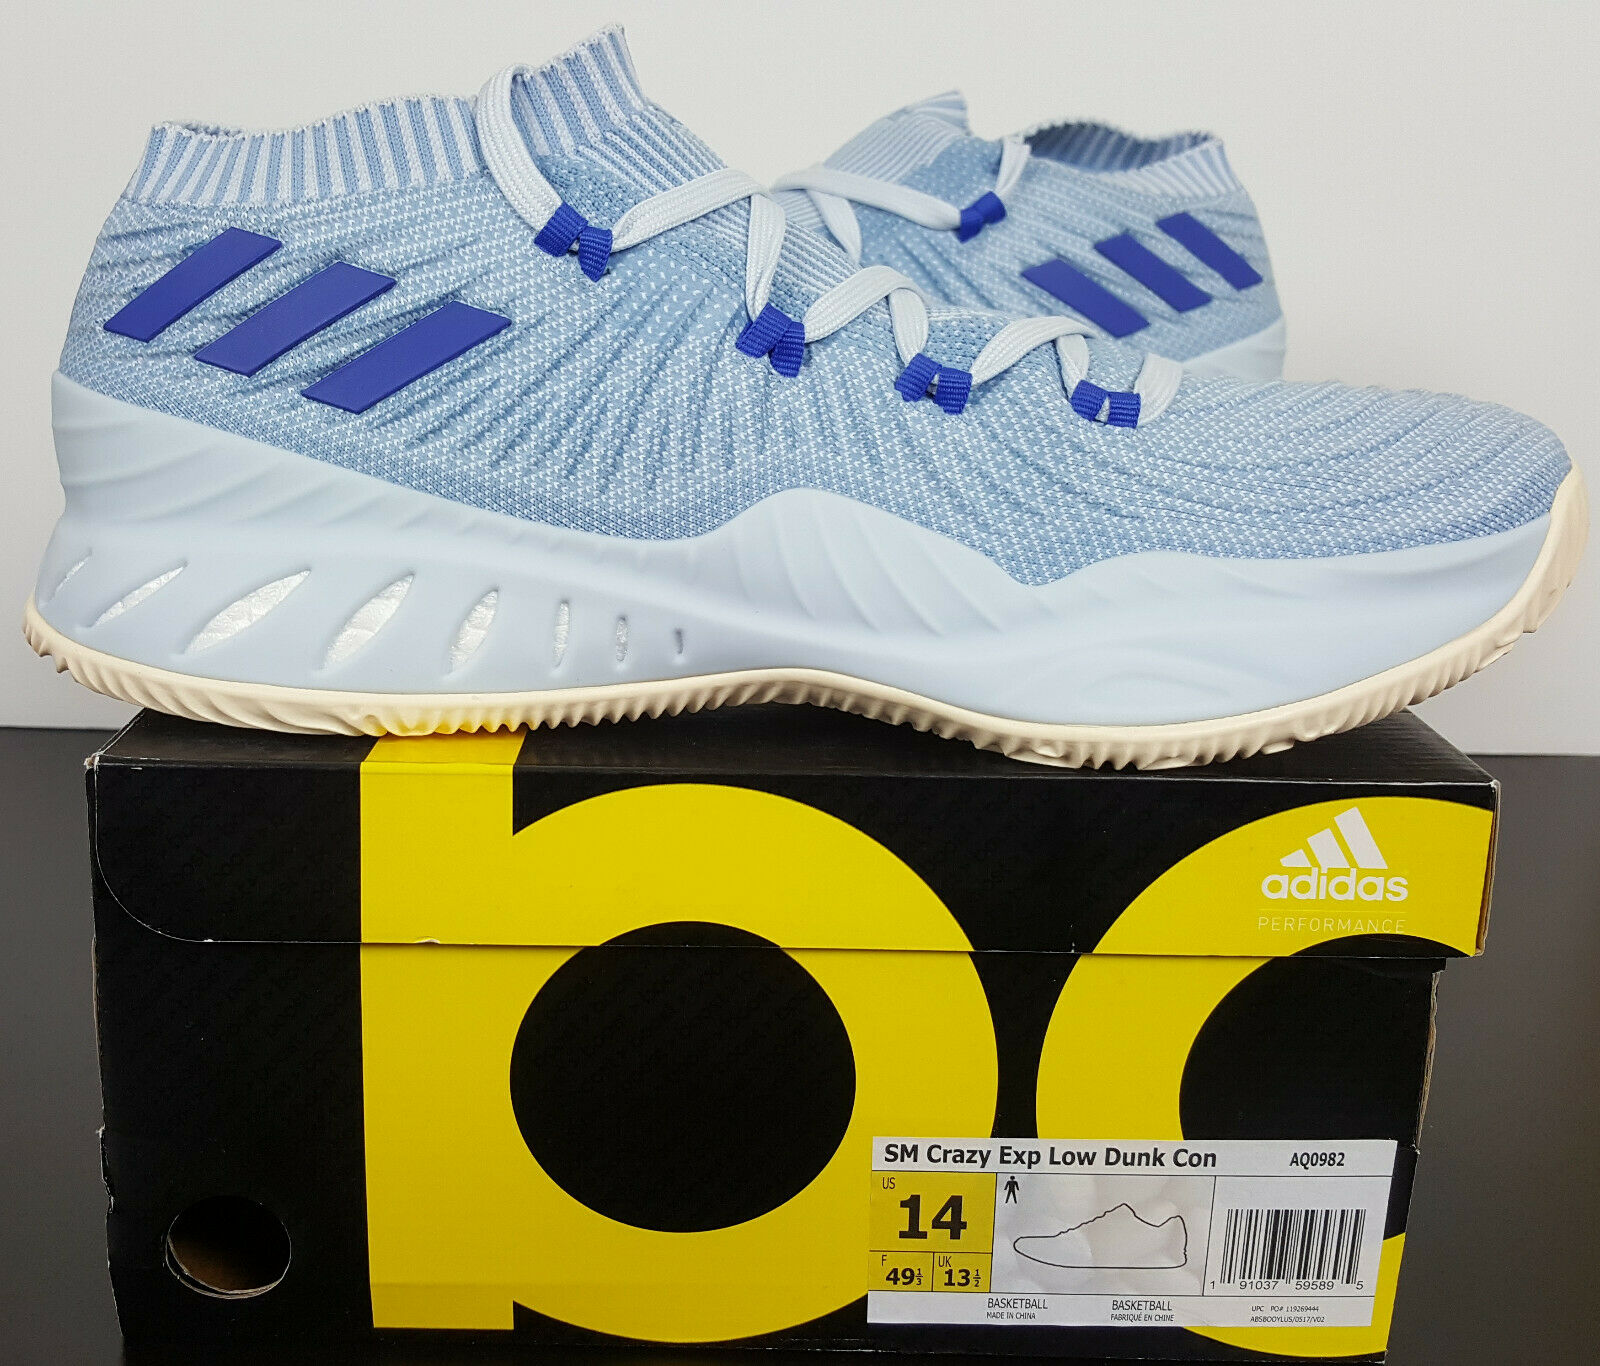 ADIDAS CRAZY EXPLOSIVE LOW DUNK CONTEST BASKETBALL blueE NEW AQ0982 (SIZE 14)